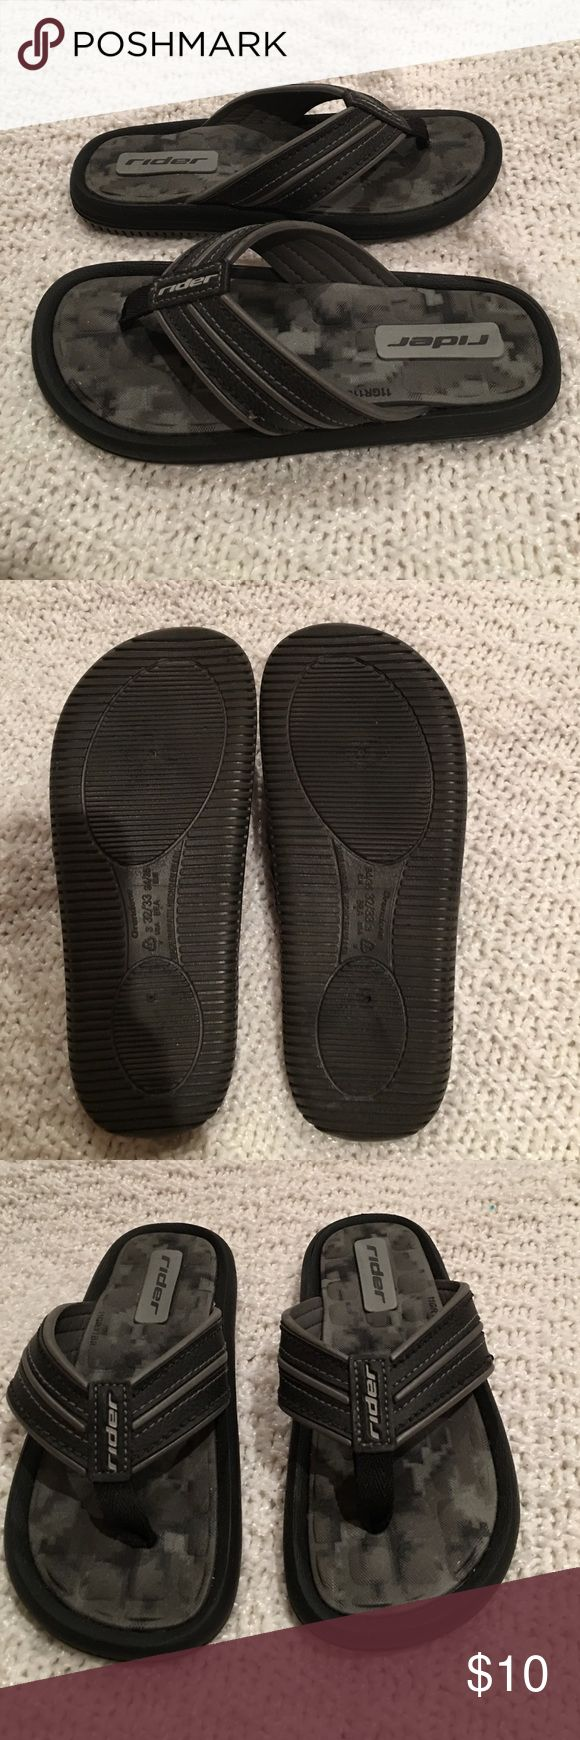 Boys Rider Flip Flops EUC condition.. I don't think they were ever worn.  They are stylish and comfortable with padding.  Made in Brazil.  There is a loose thread on the stitching on one of the sandals (see pic #4) which was there when I purchased them.  Size 3. Shoes Sandals & Flip Flops